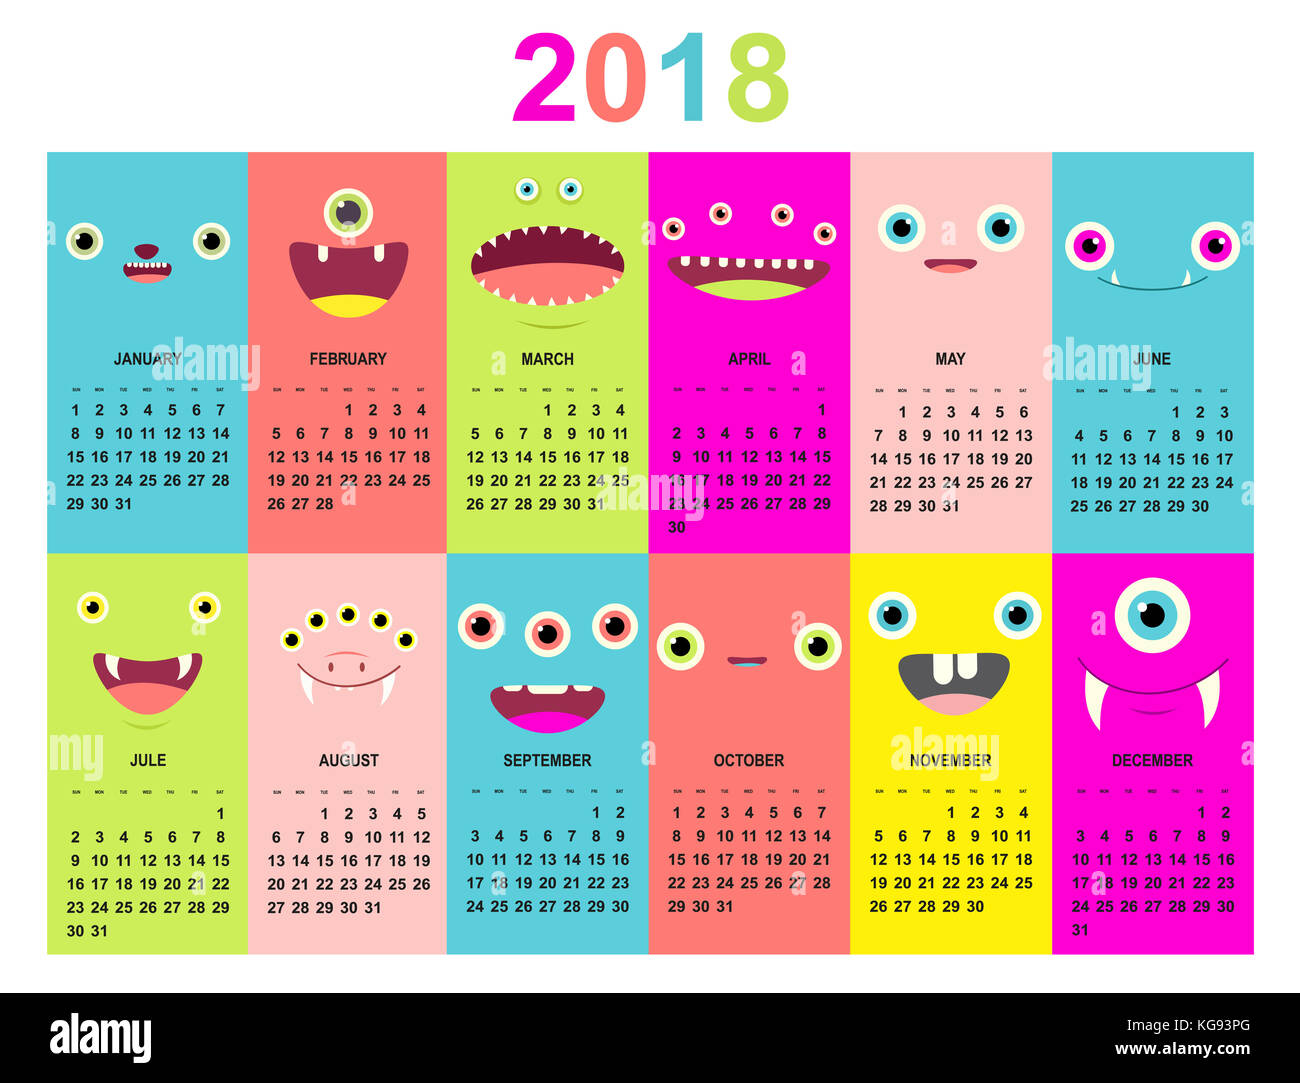 monthly calendar 2018 with cute monsters faces of green blue yellow pink